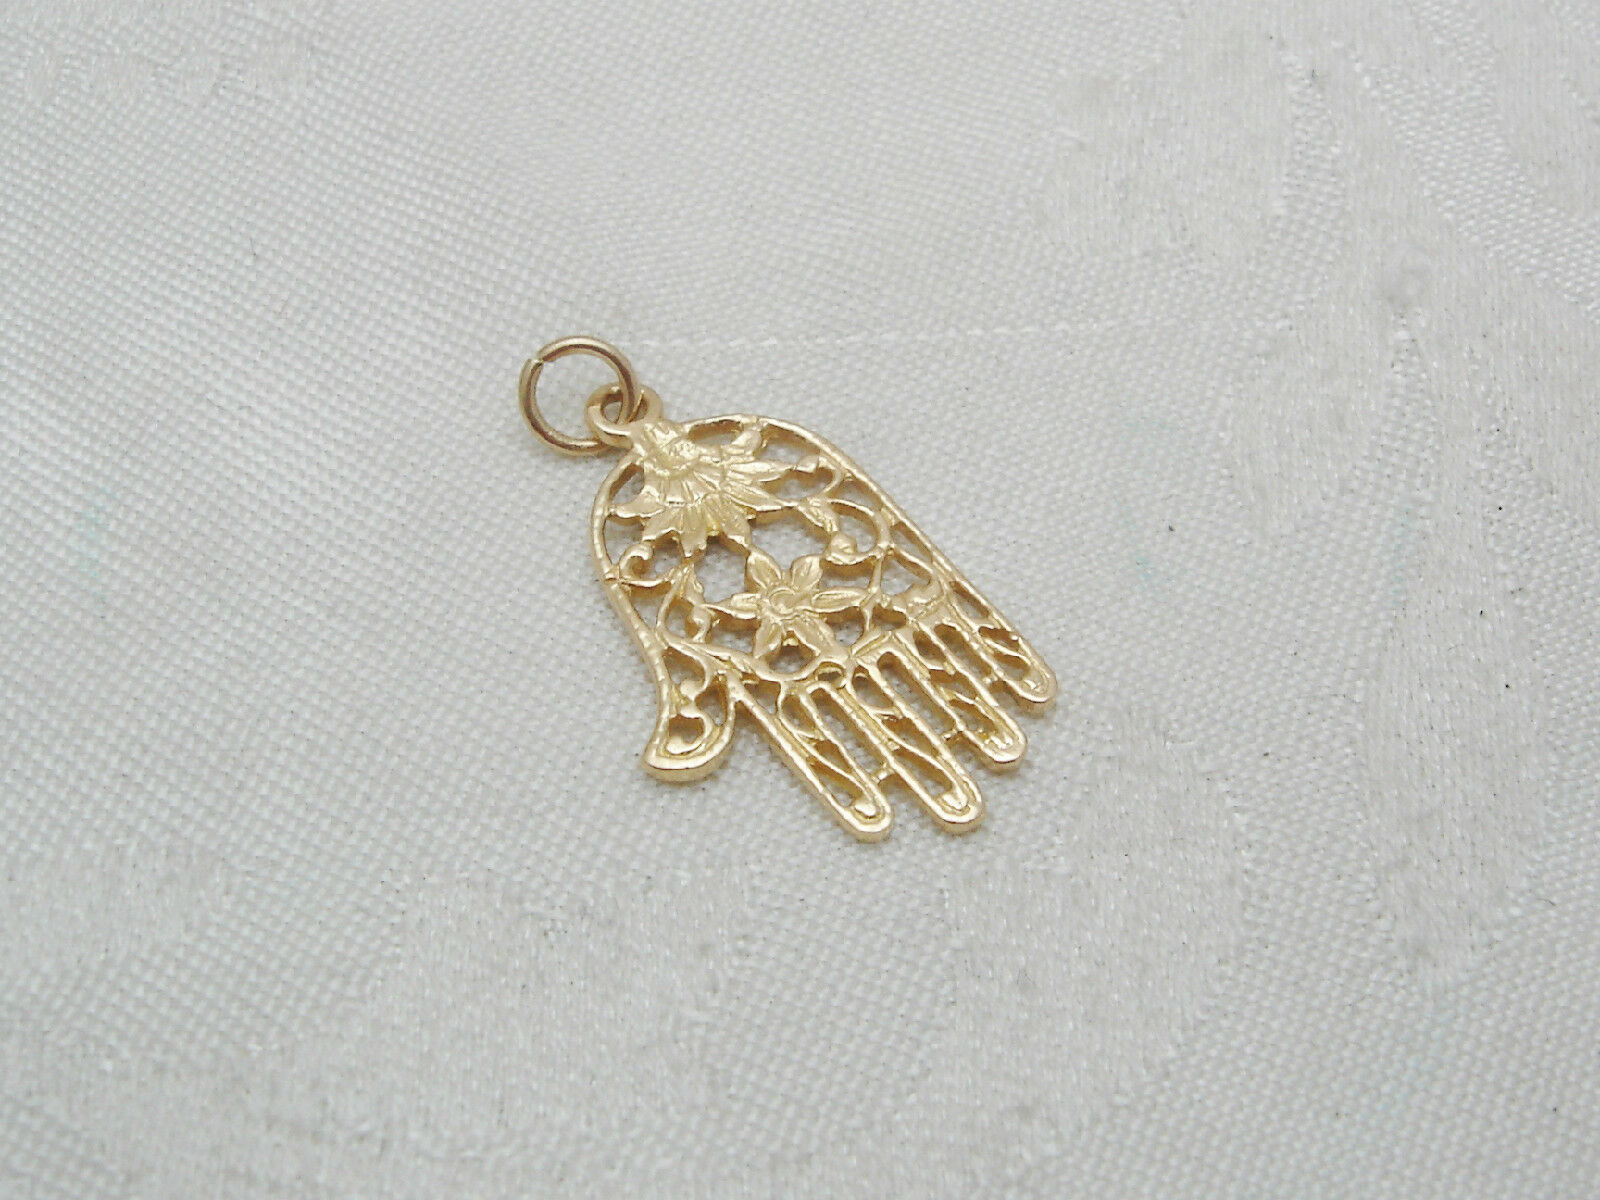 Hand with FLORAL Design 14k Solid Yellow gold Charm or Pendant 158-T